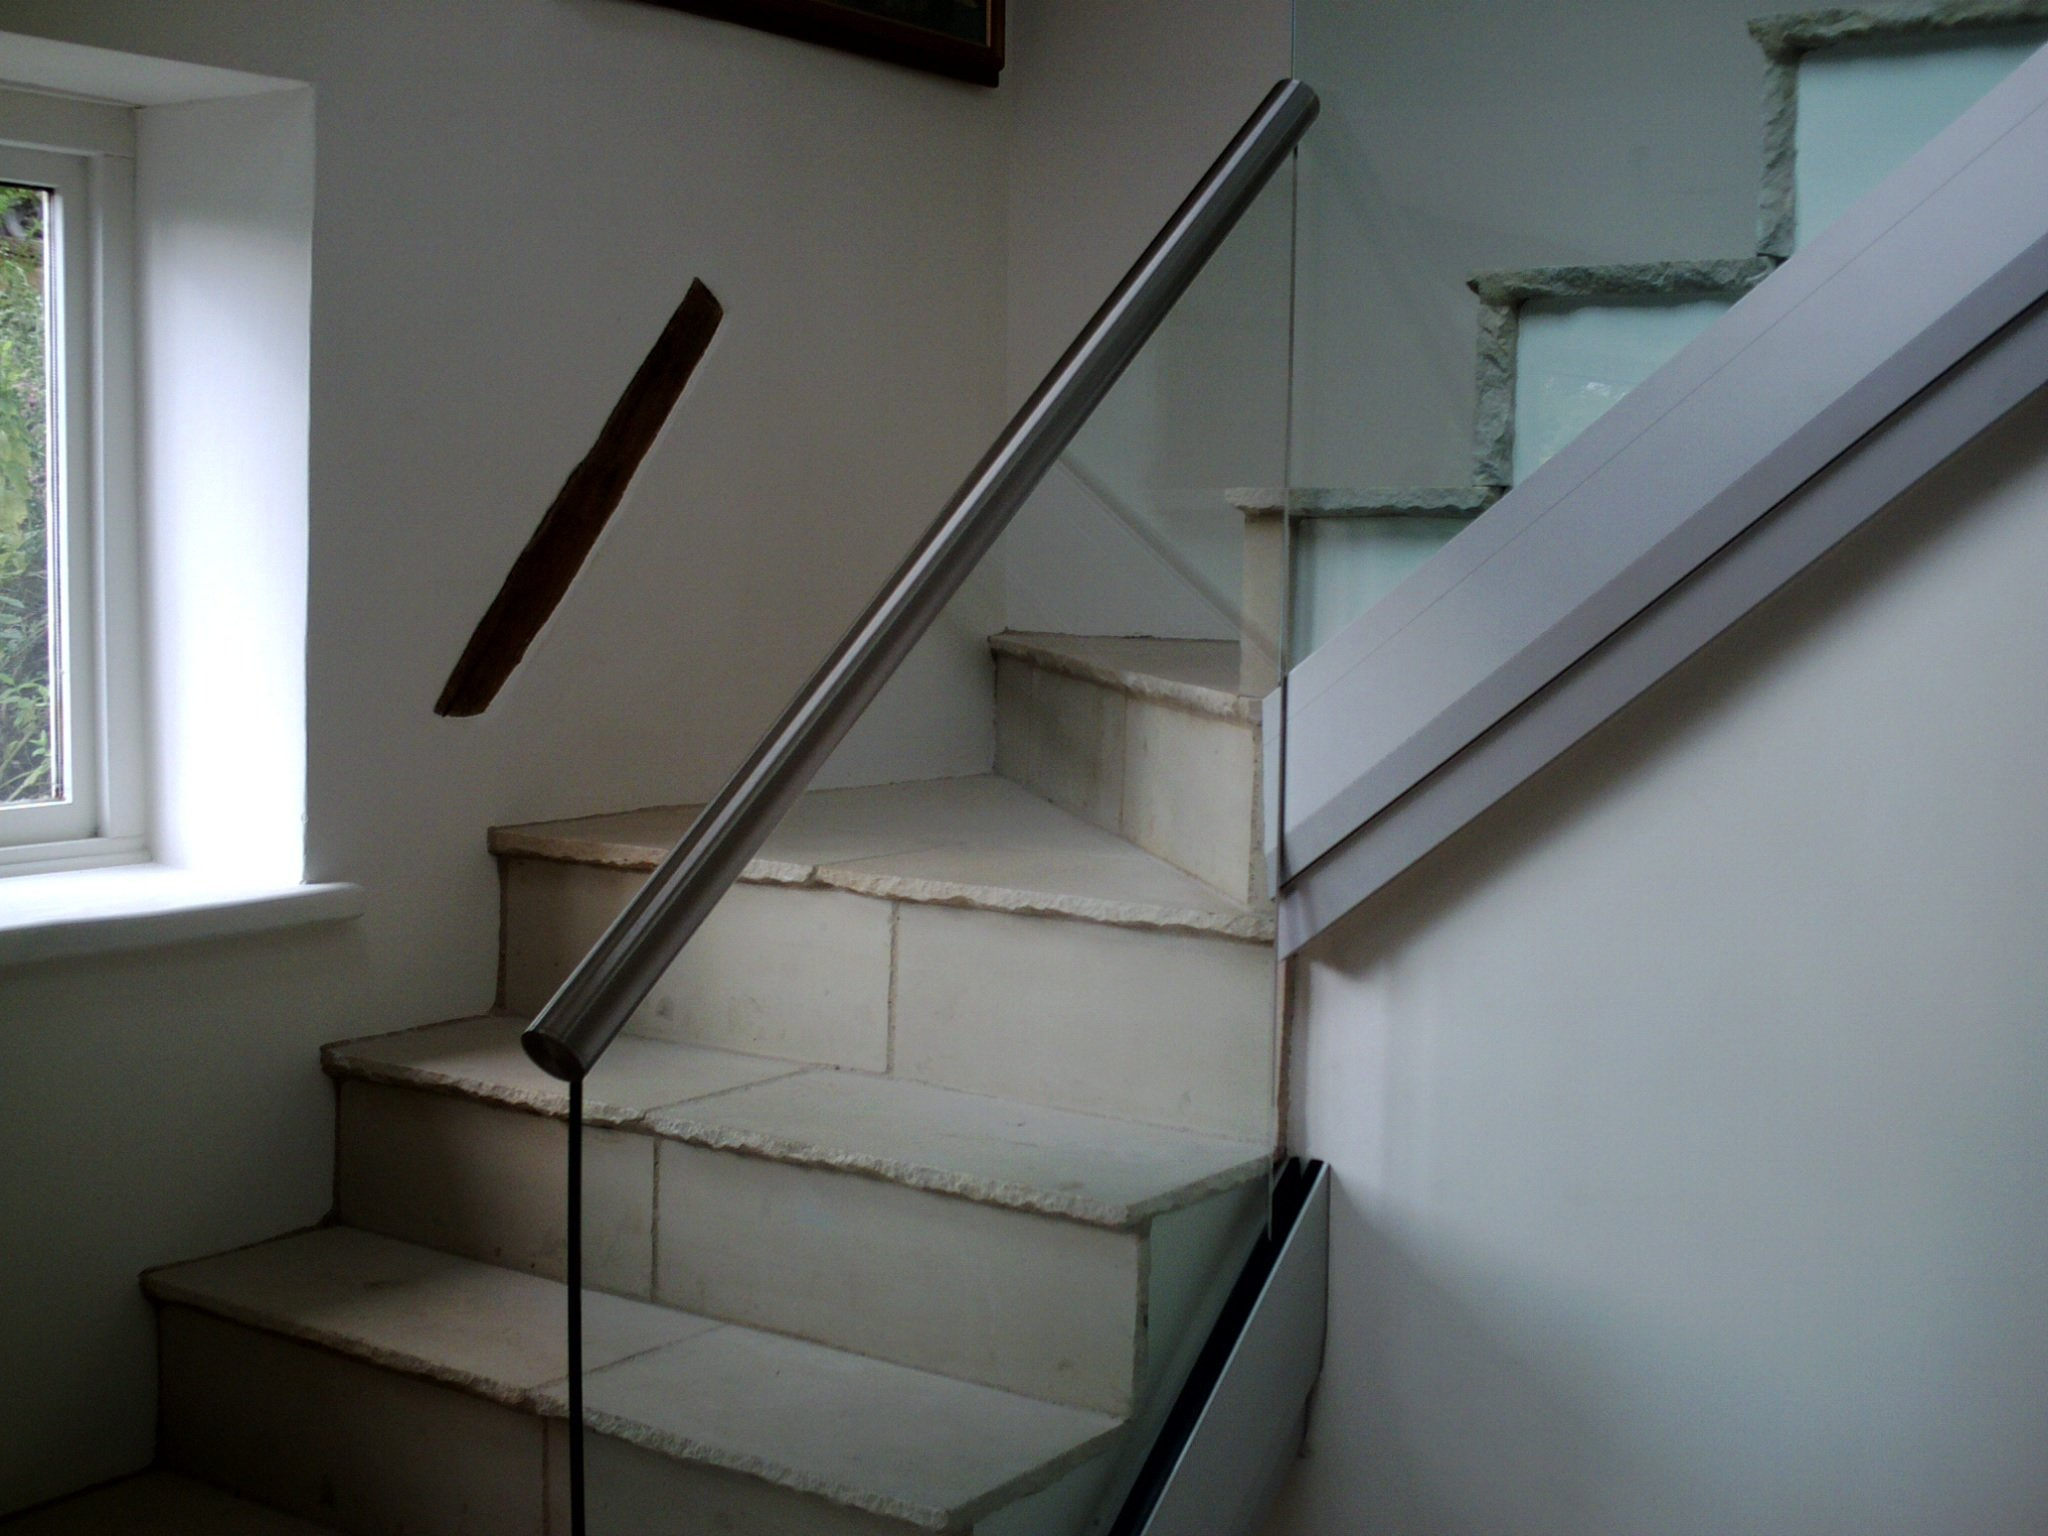 Professional glass installers